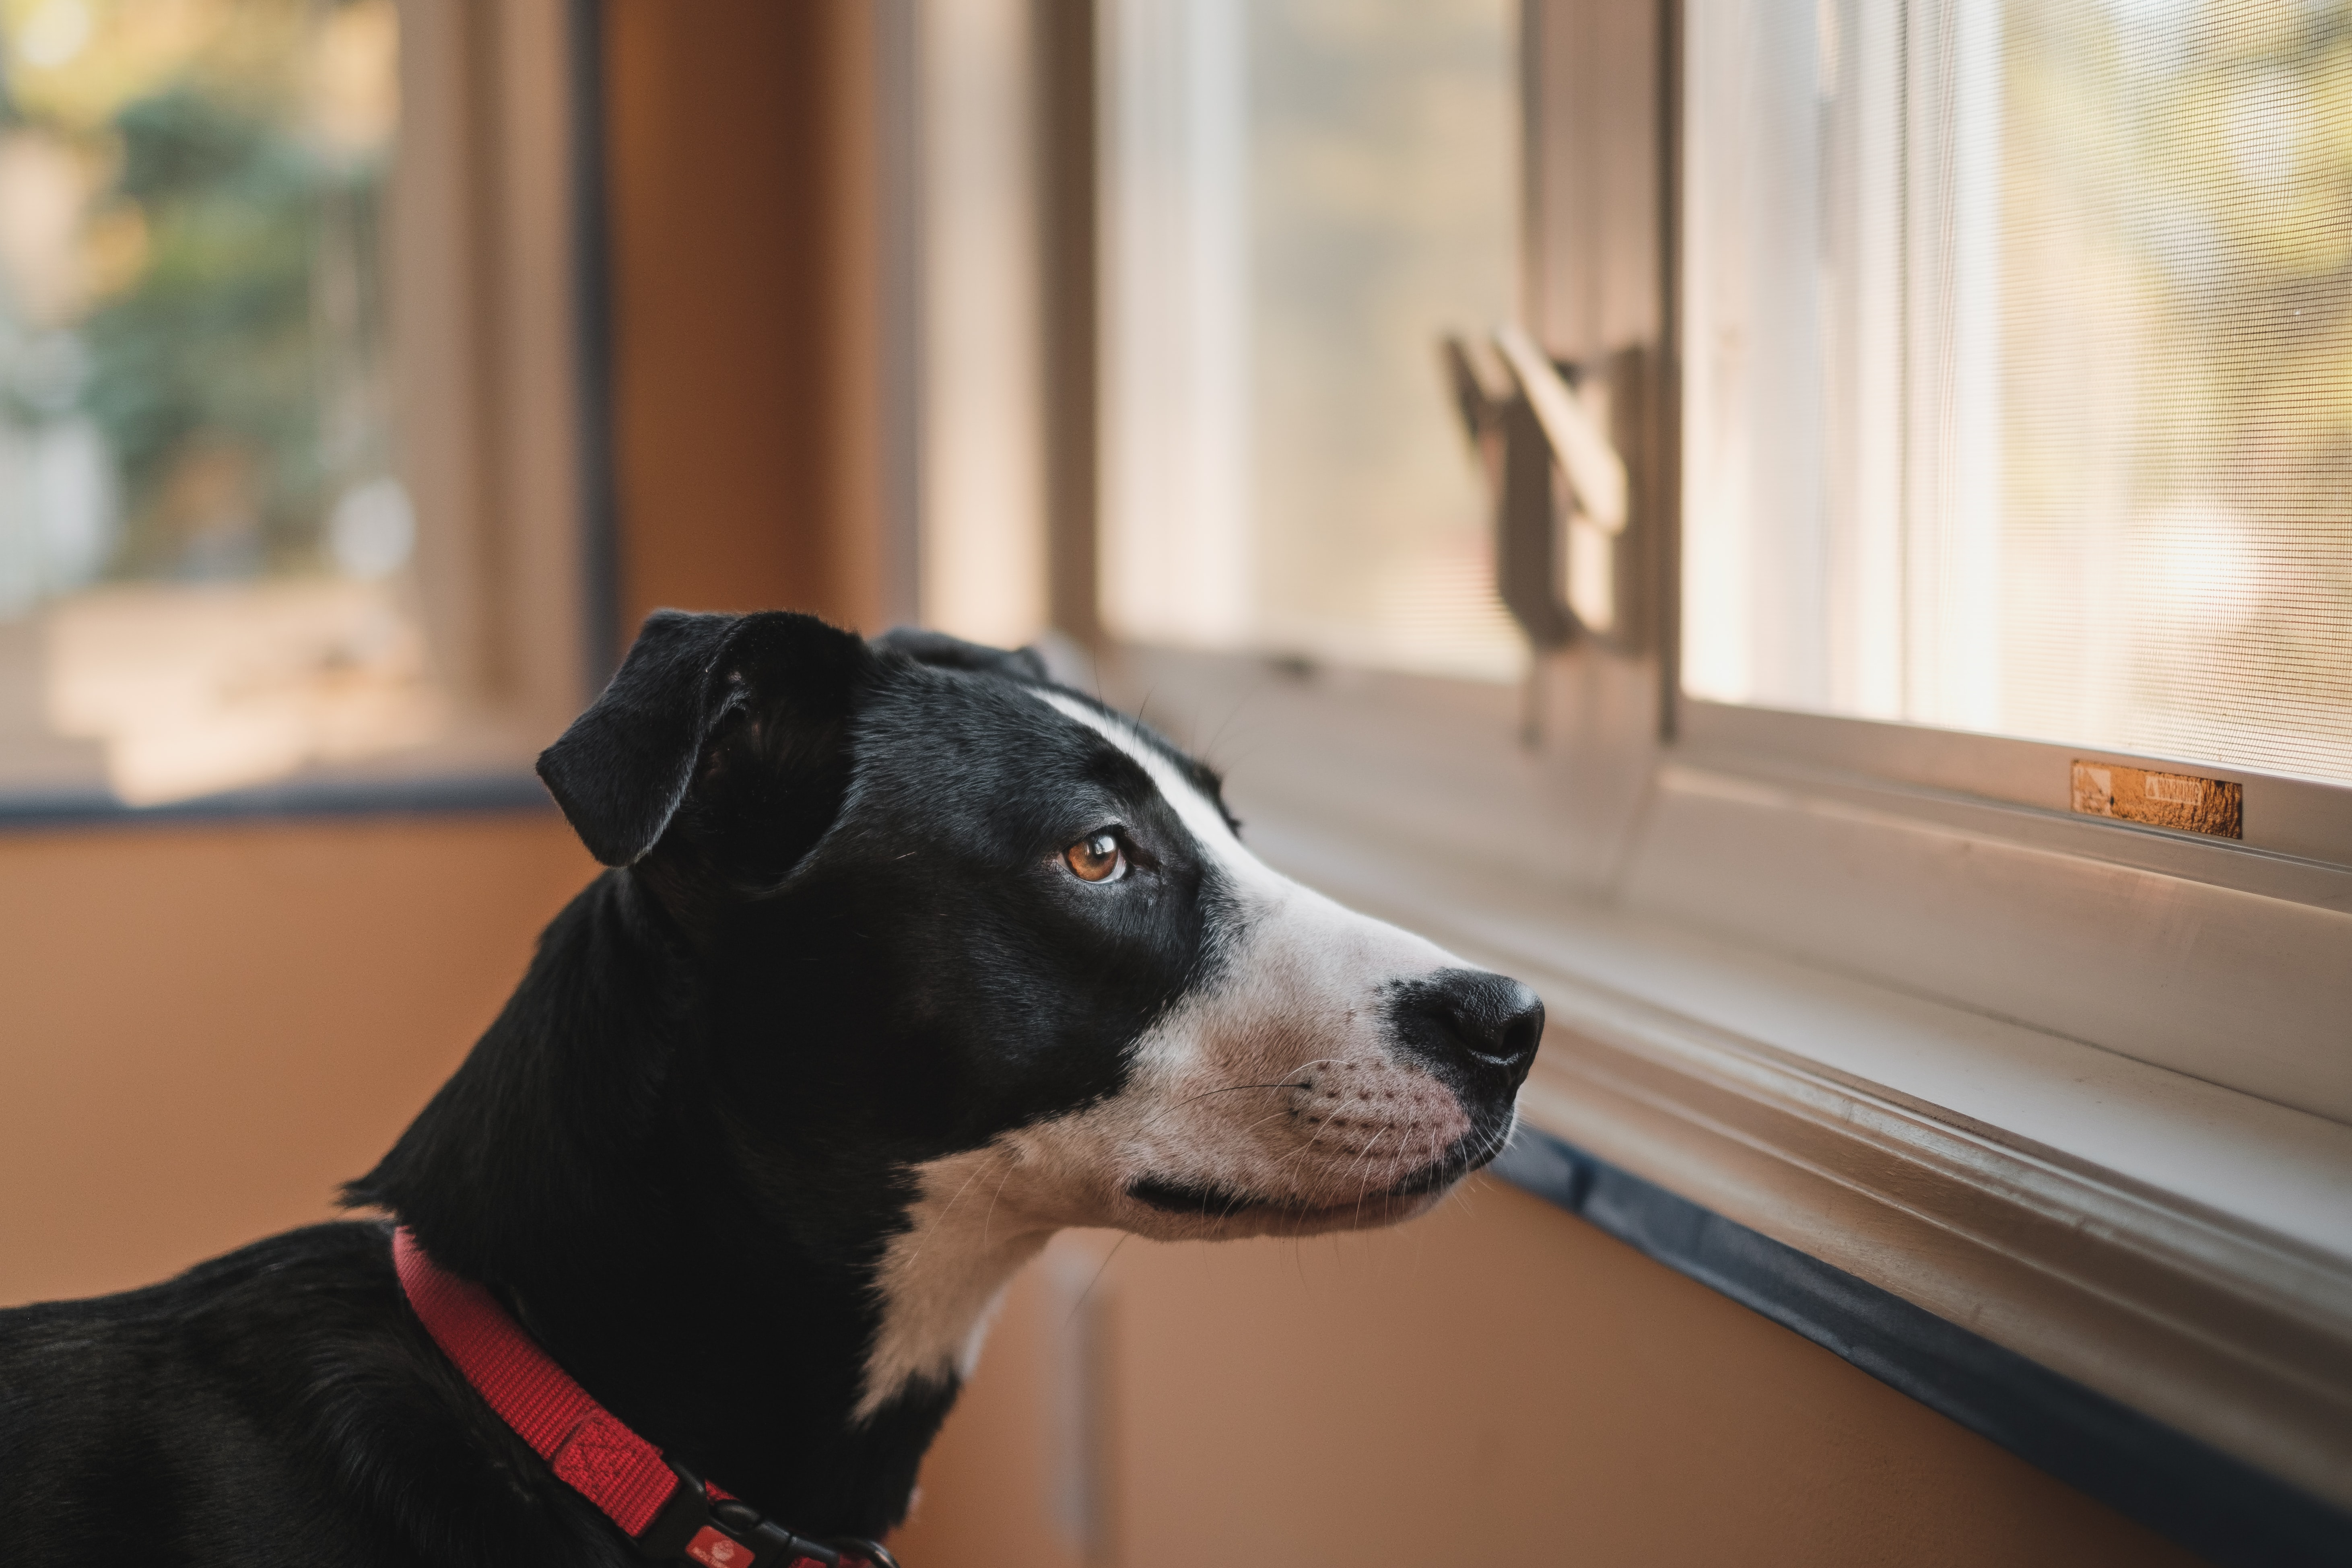 Black and white dog with red collar stares out of window from inside a tan room